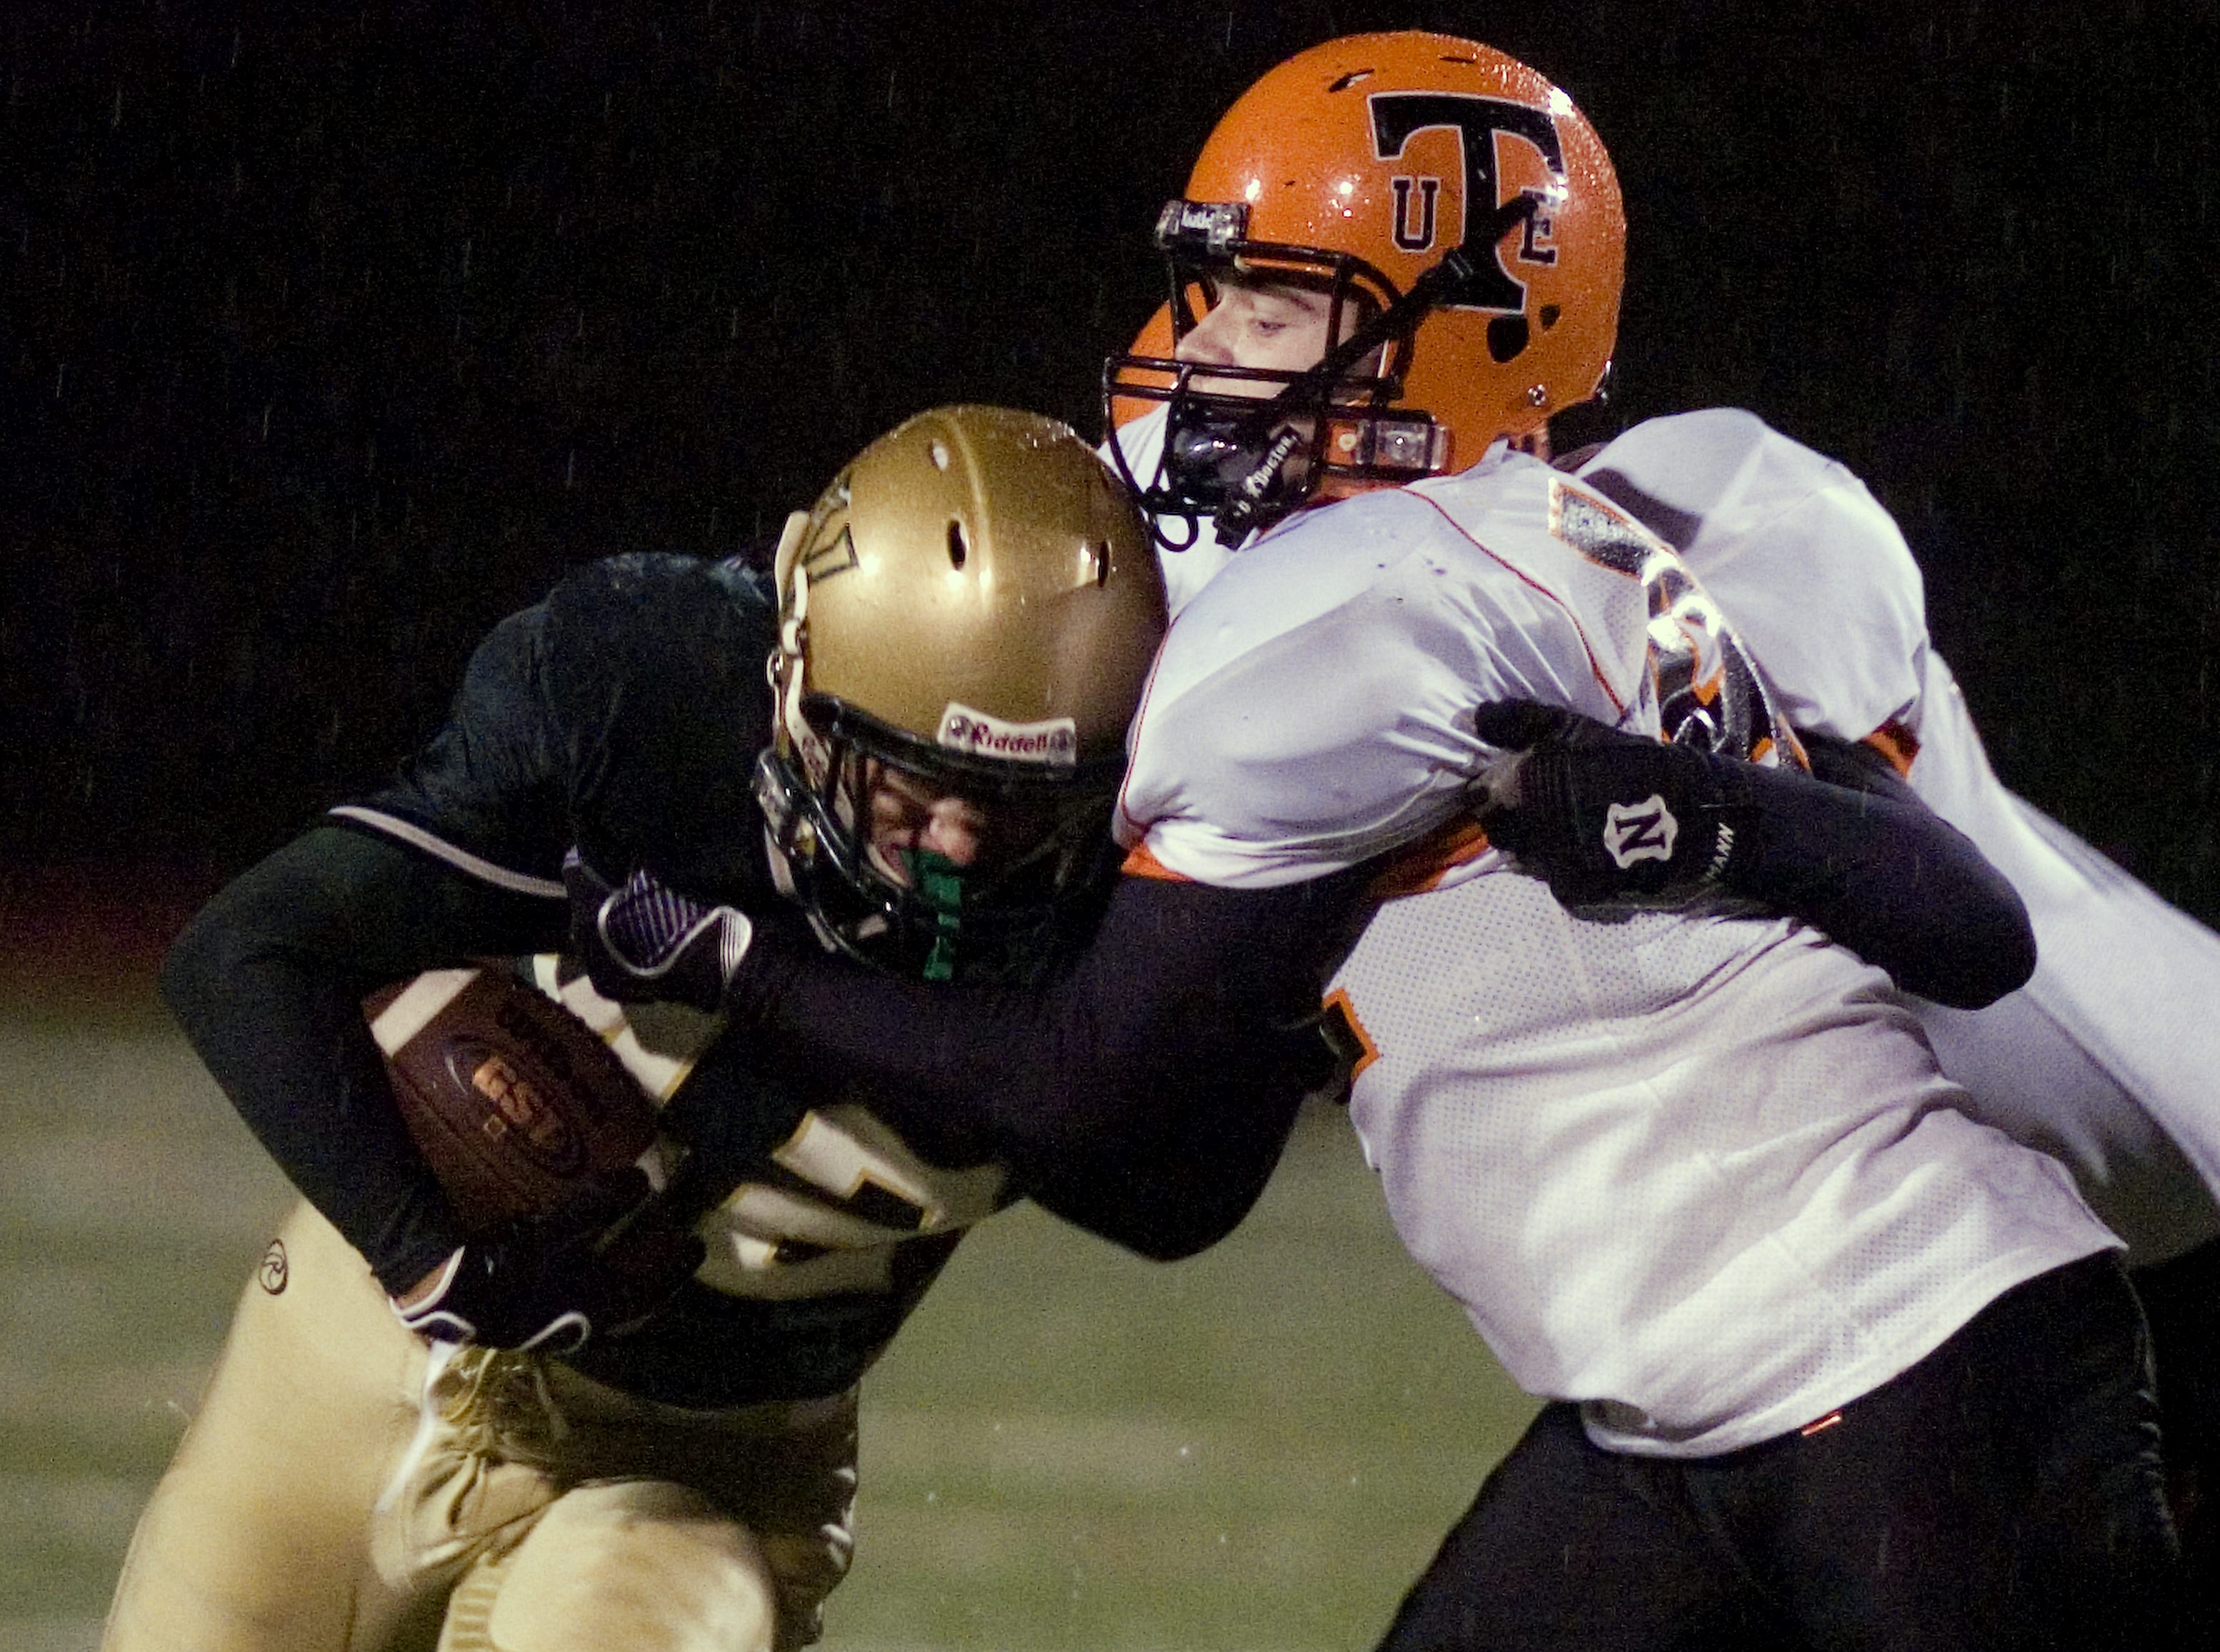 Union-Endicott's Troy Beddoe, front right, and Tyler Bayer tackle Vestal's Thad Zaparzynski, left, in the first quarter of a 2009 game at Dick Hoover Stadium.